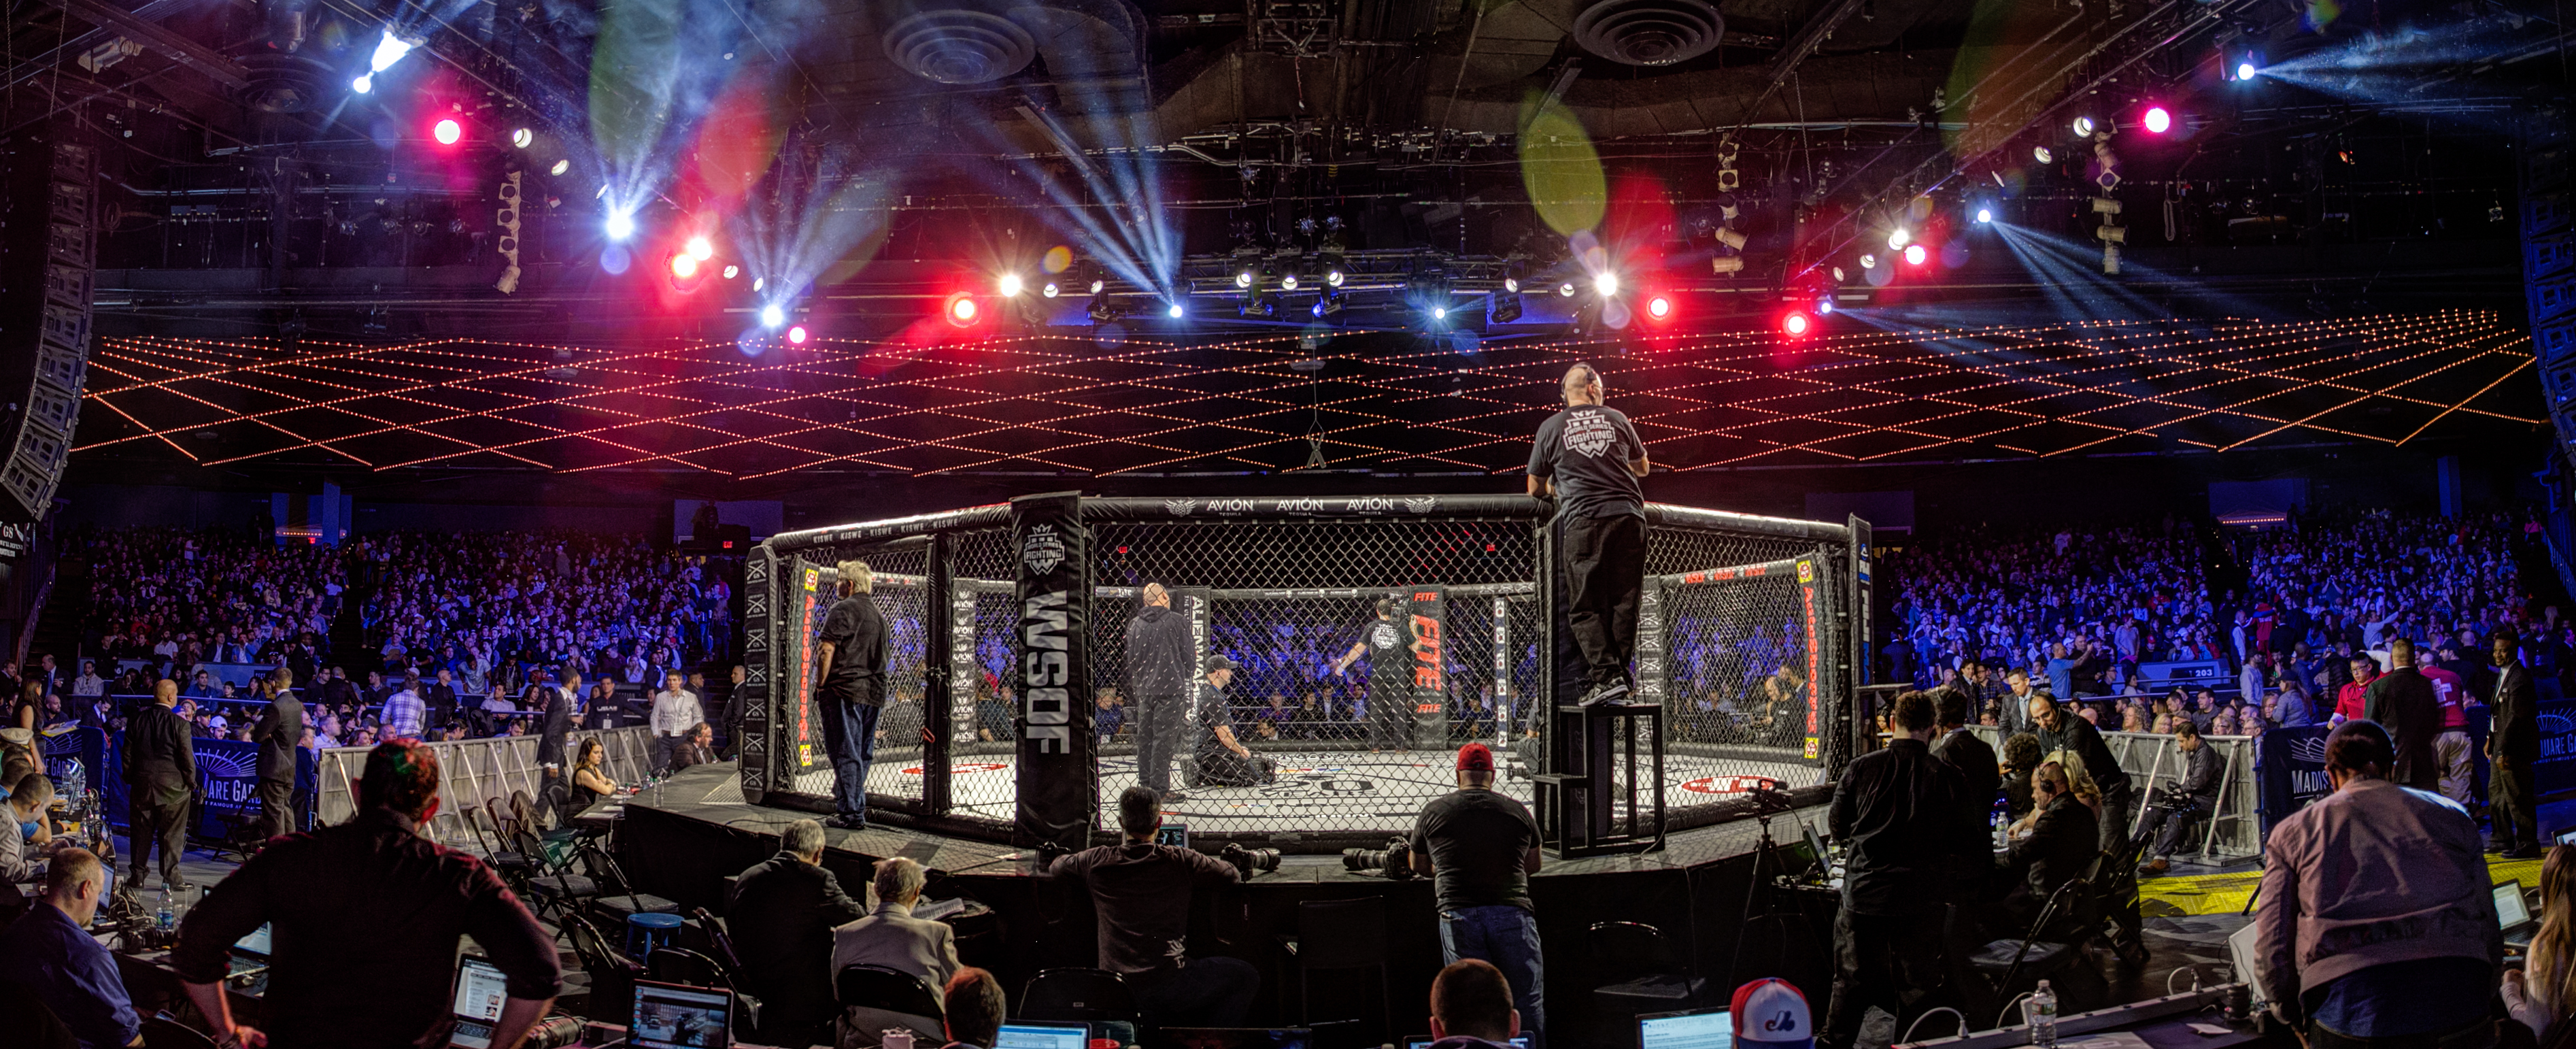 WSOF NYC - Photo Josh Brandenburg